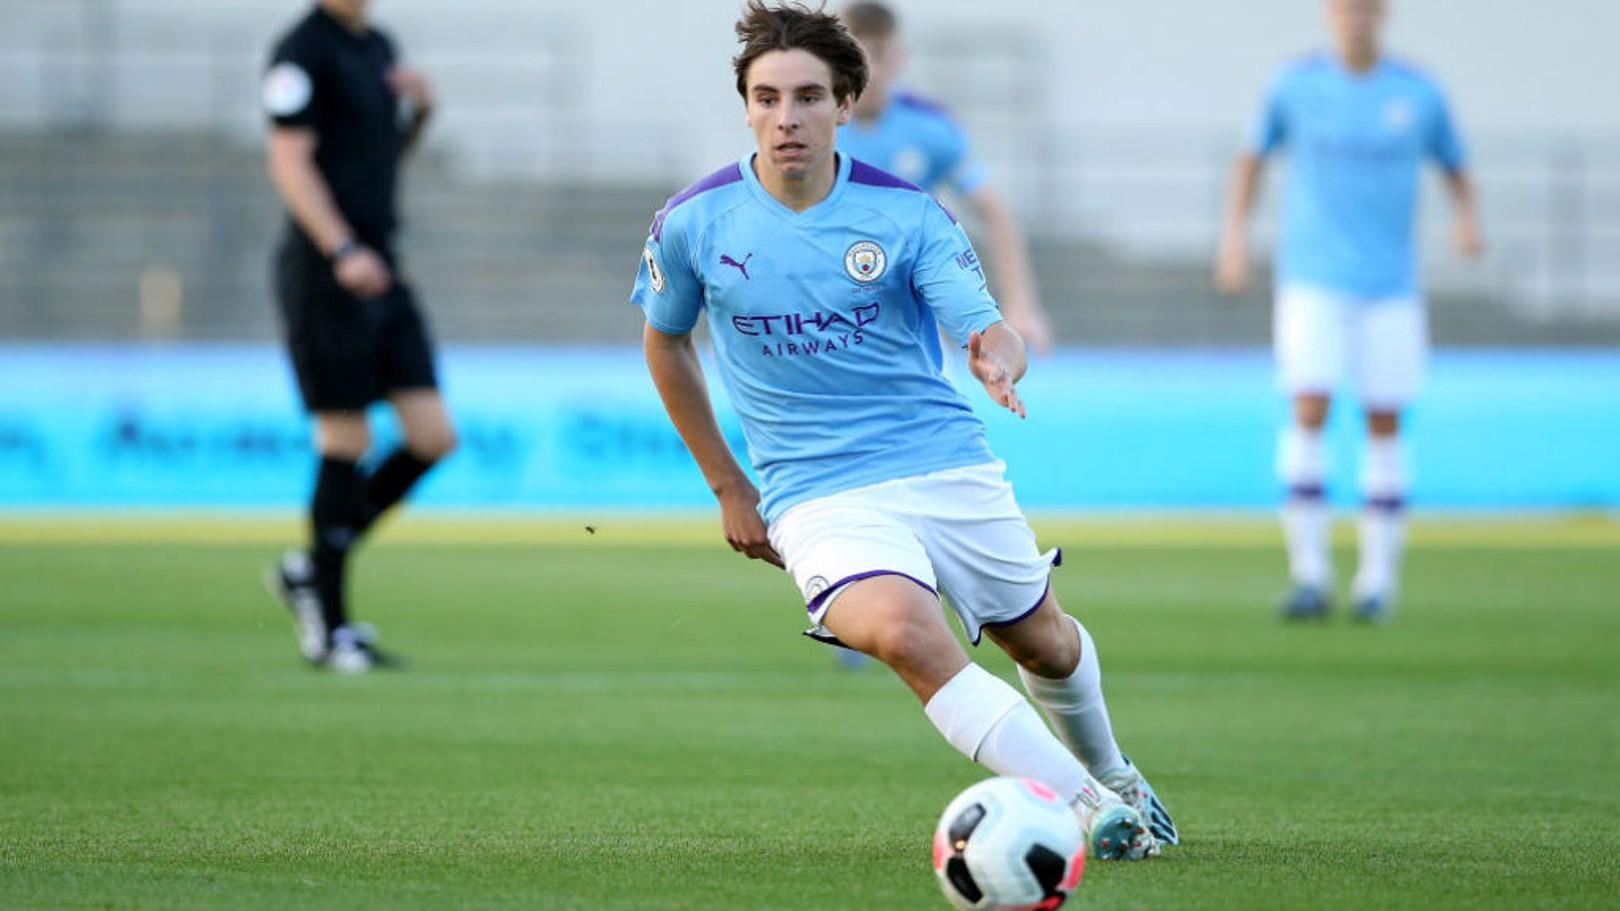 ON THE MARK: Adrian Bernabe scored City's second goal in our 2-0 Leasing.com Trophy win at Rochdale